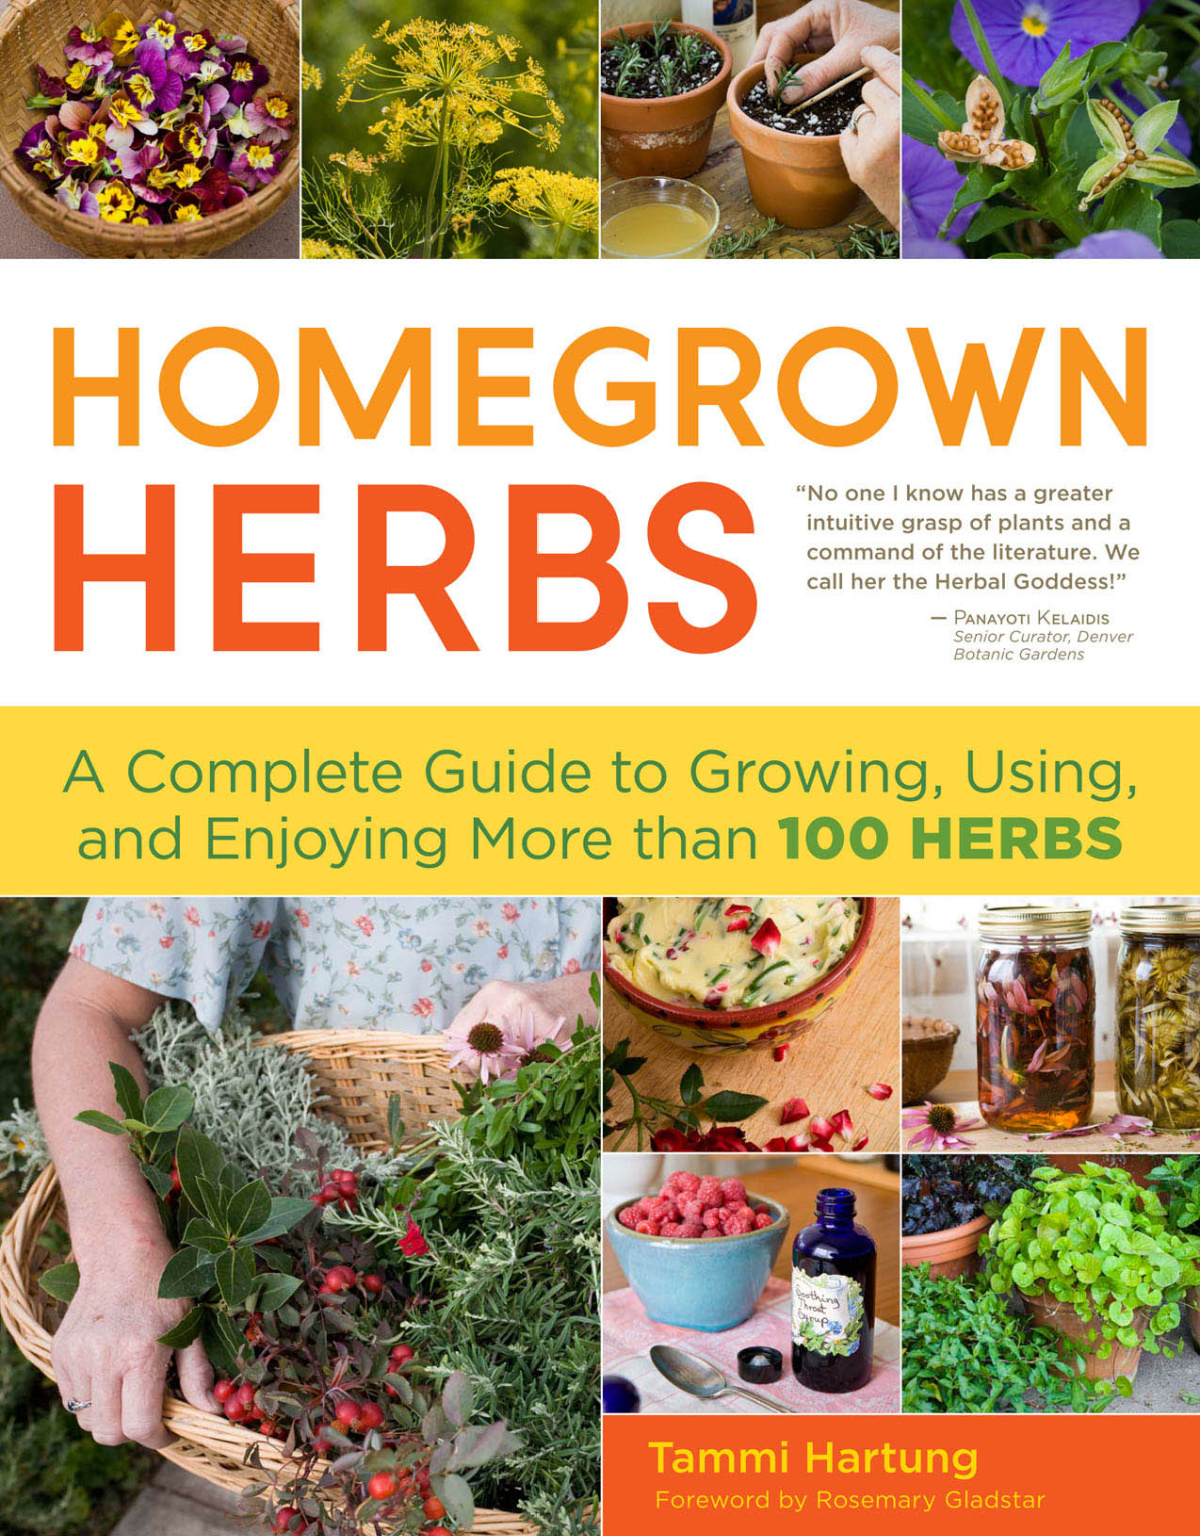 Homegrown Herbs book by Tammy Hartung